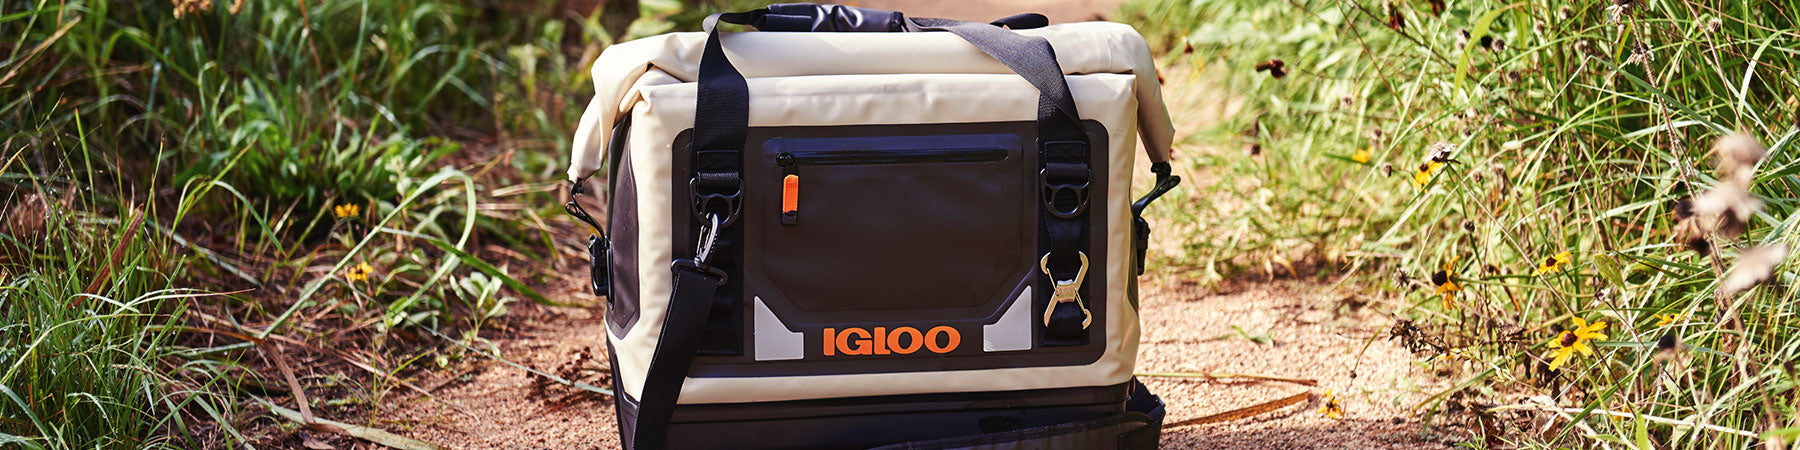 Waterproof<br/>Cooler Bags